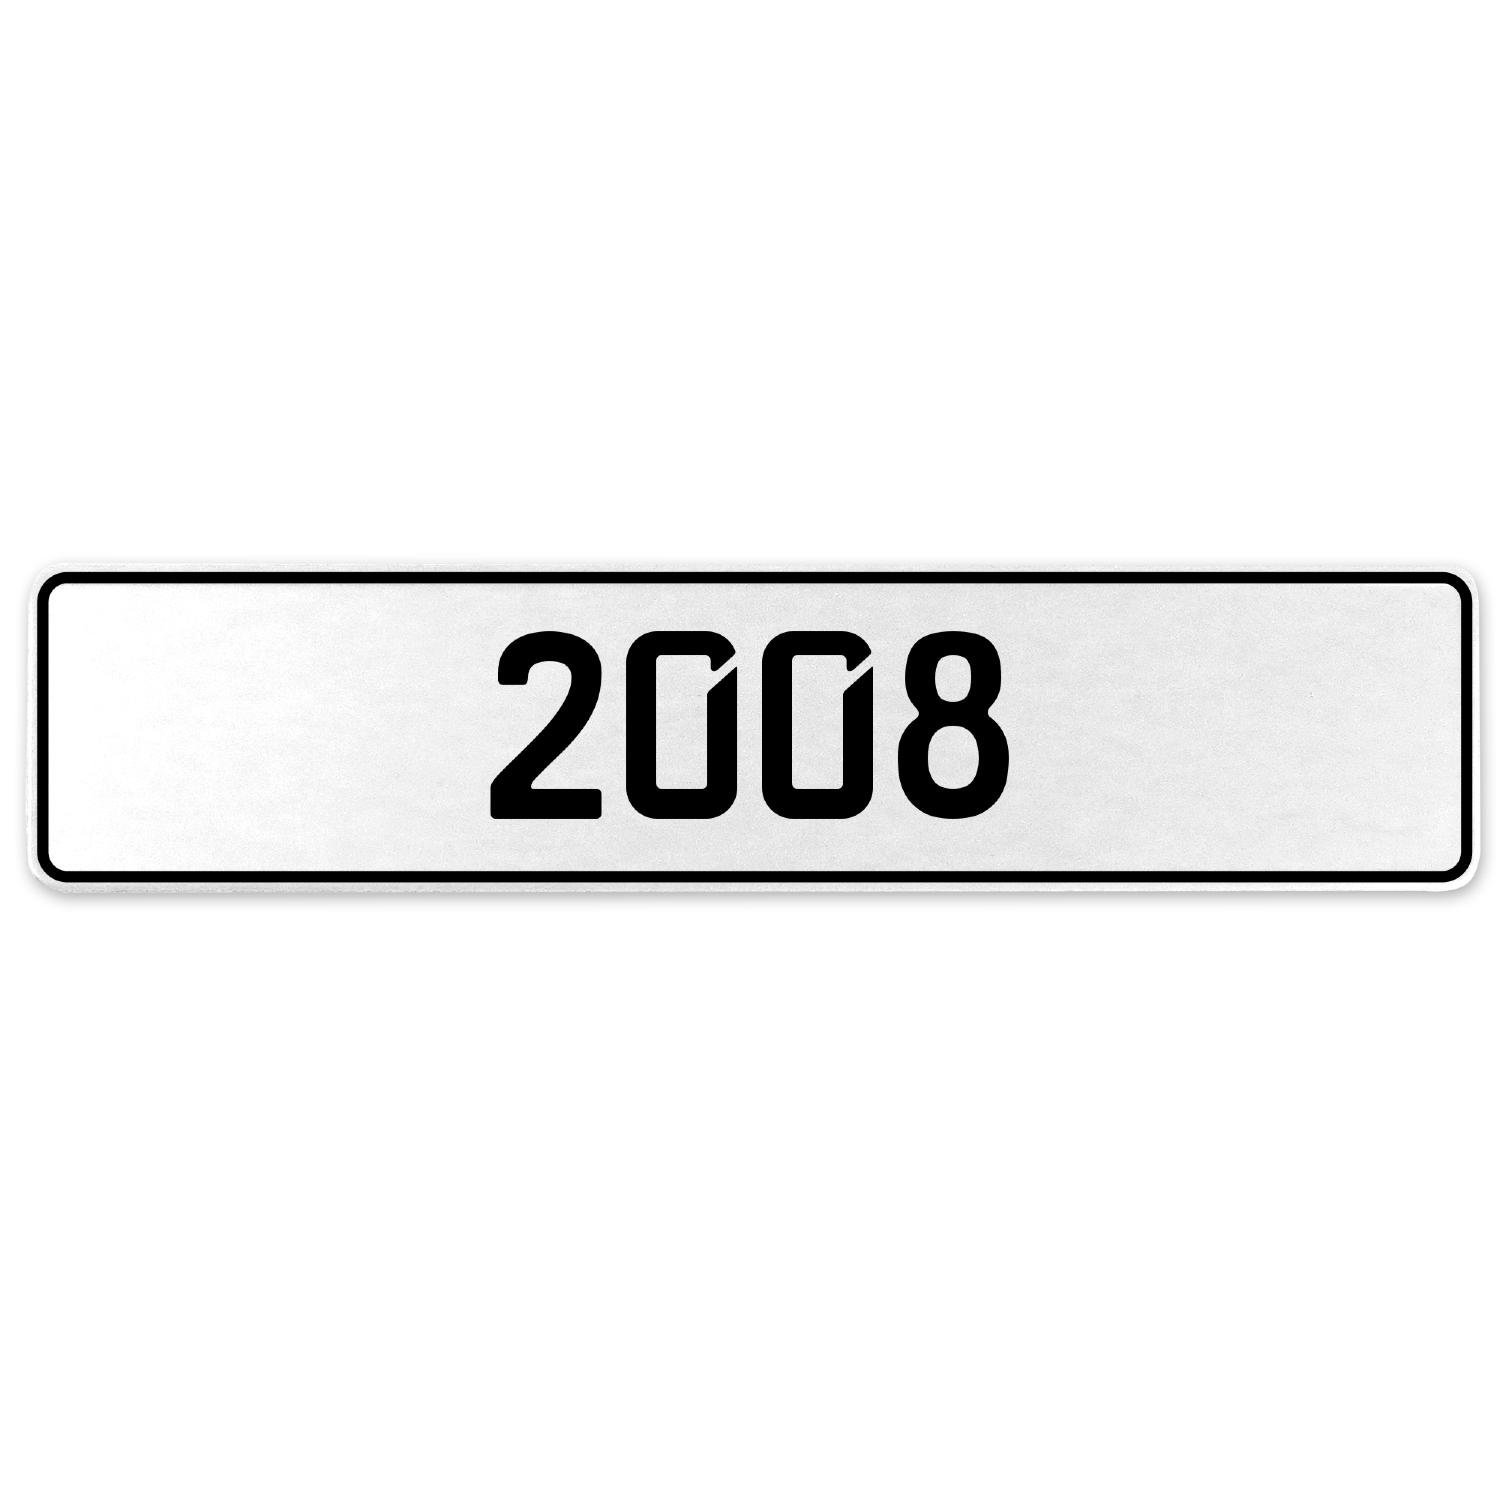 Vintage Parts 553251 2008 Year White Stamped Aluminum European License Plate